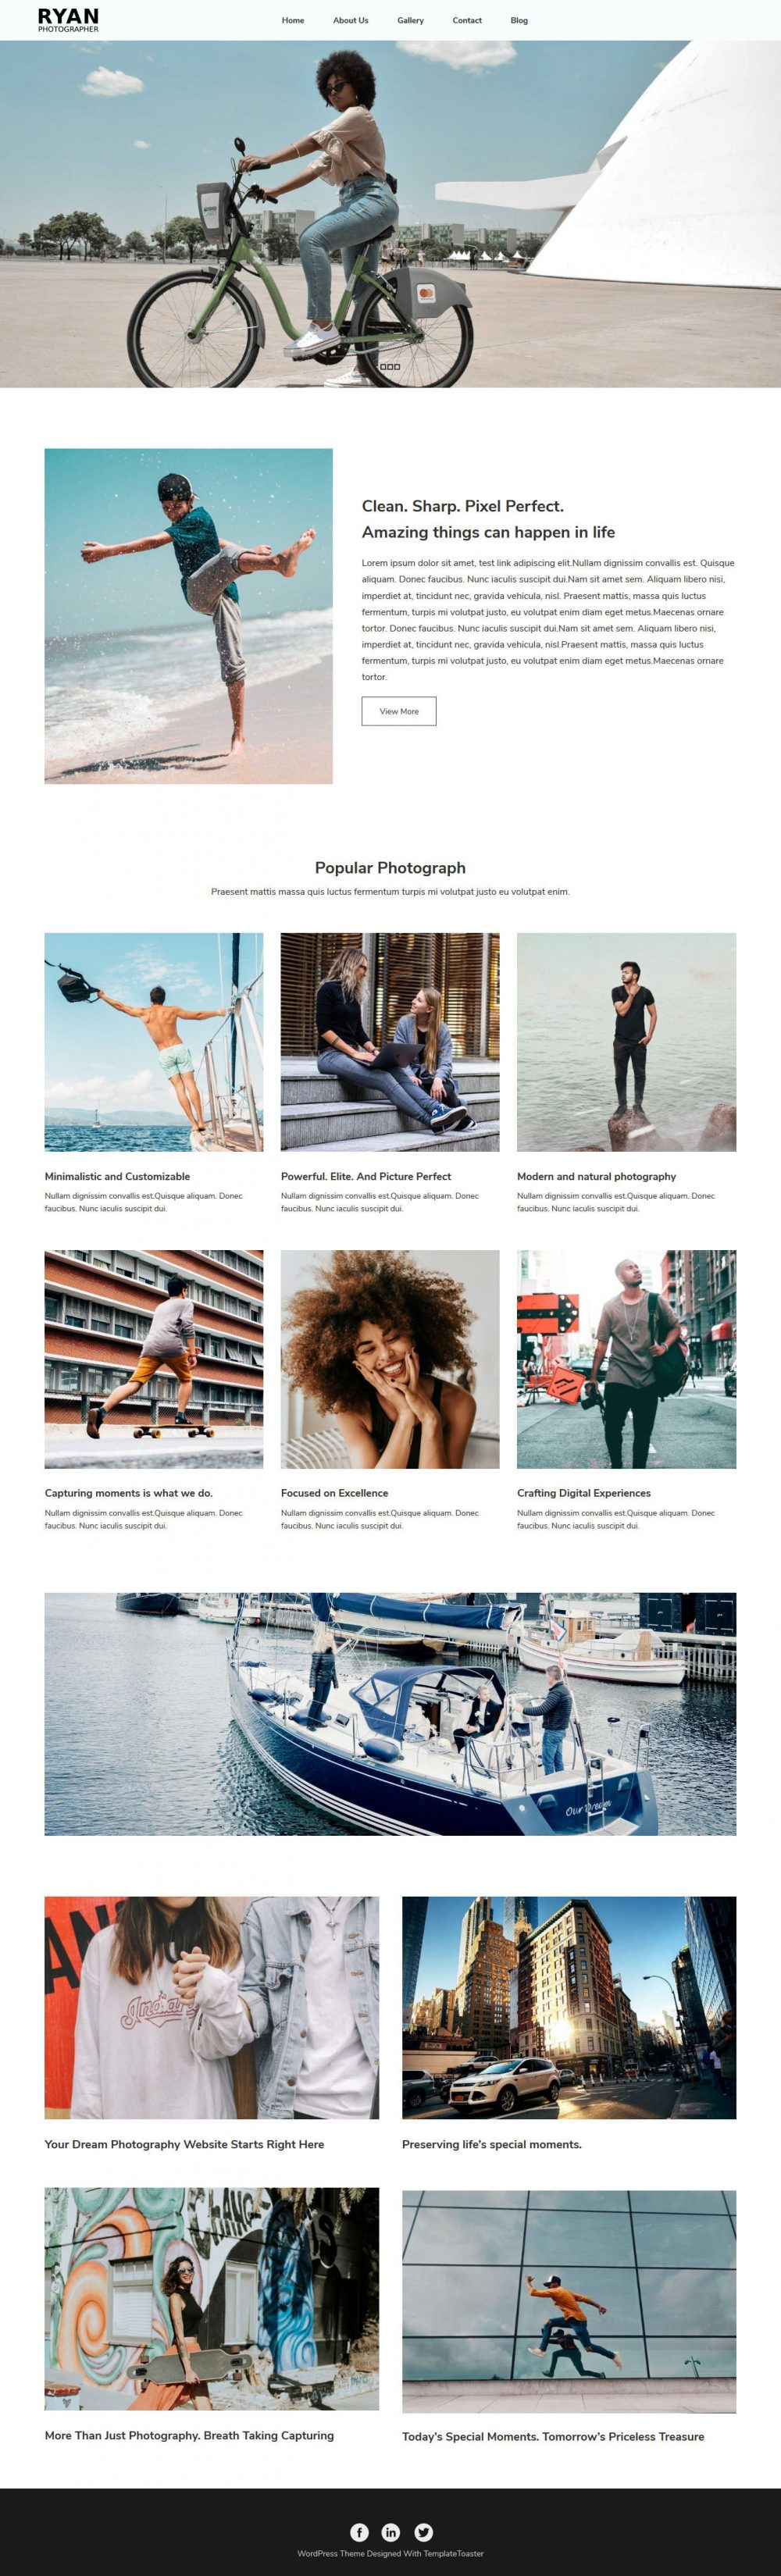 Ryan Photographer Drupal Theme